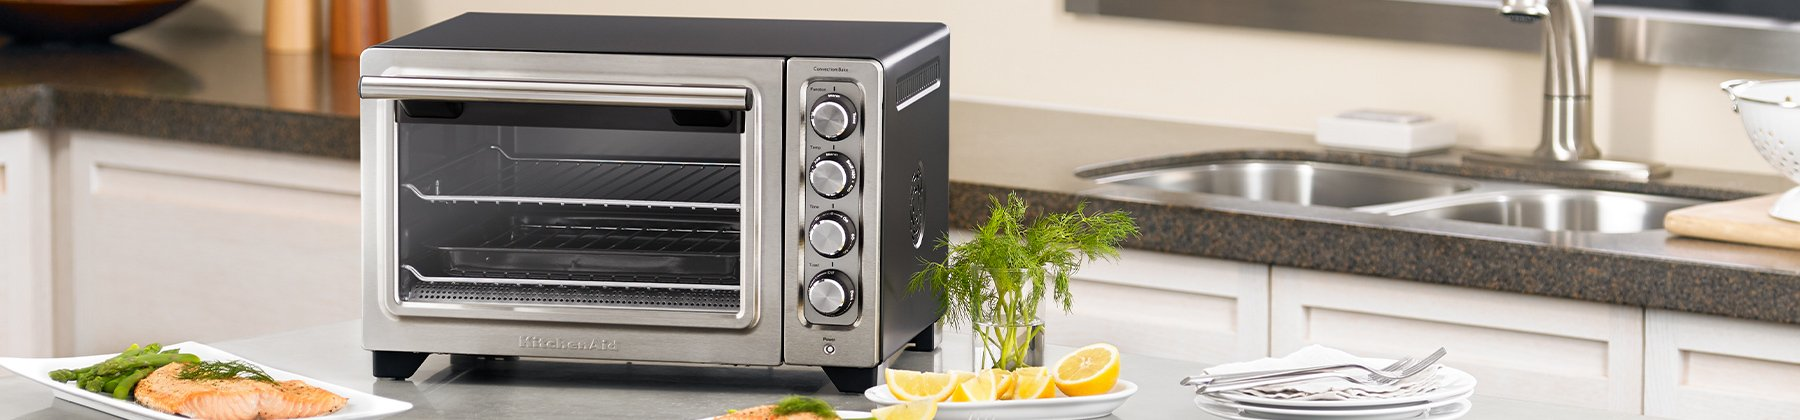 Photo of toaster ovens.